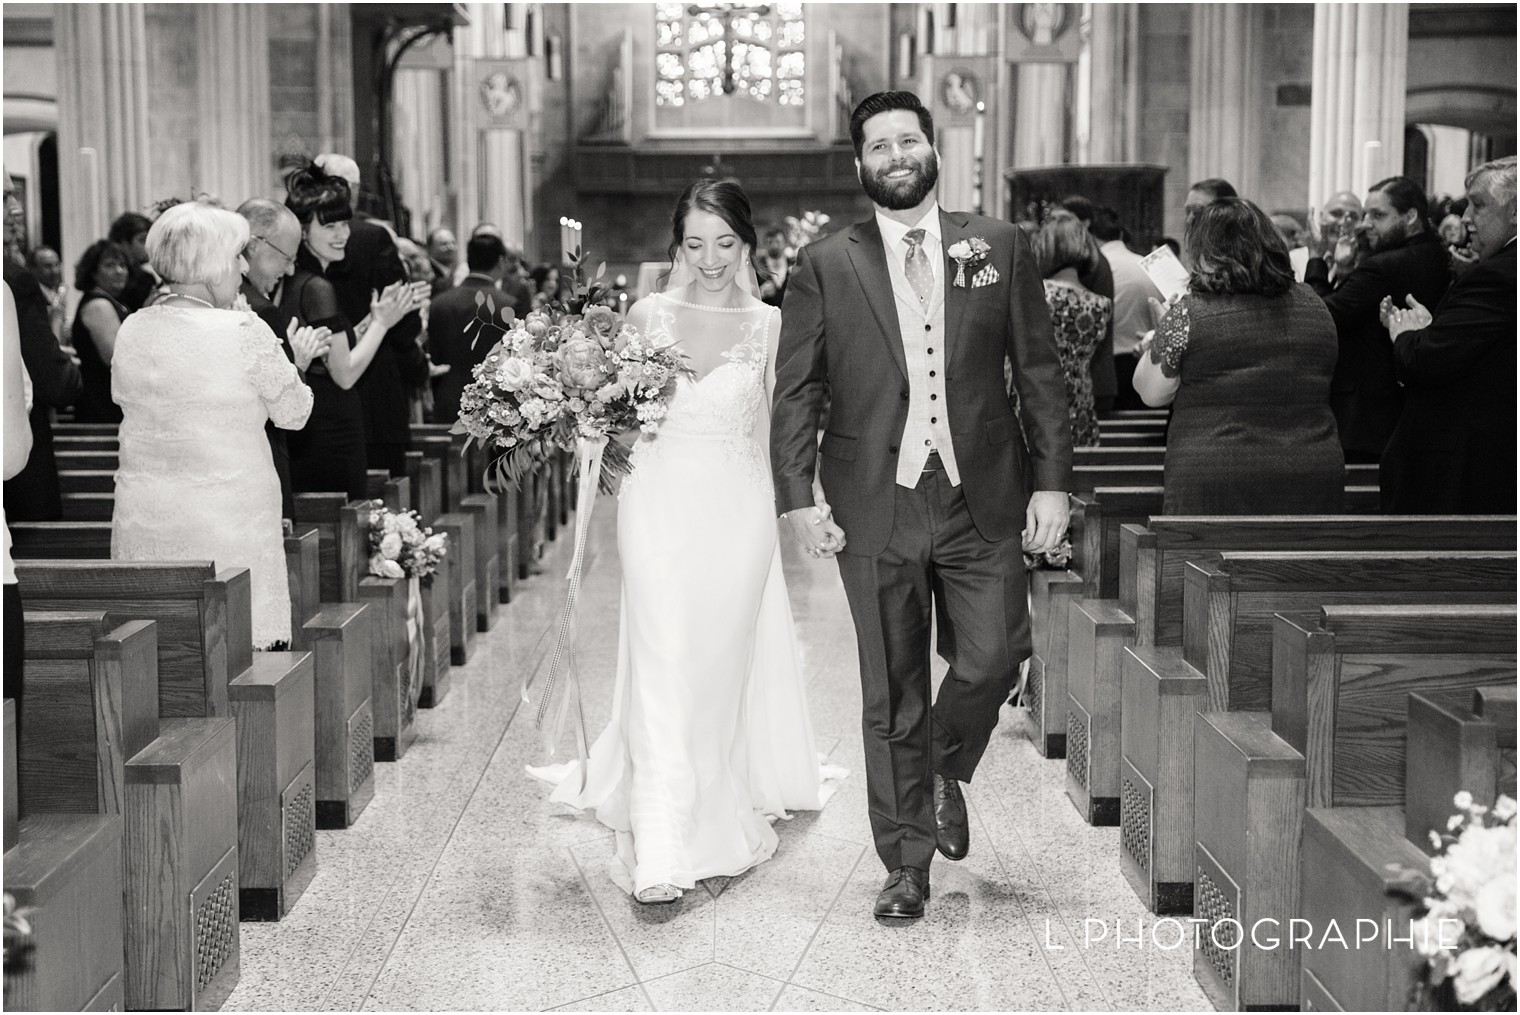 L-Photographie-Saint-Louis-wedding-photography-Cathedral-of-Saint-Peter-Forest-Park-Visitor-Center_0042.jpg